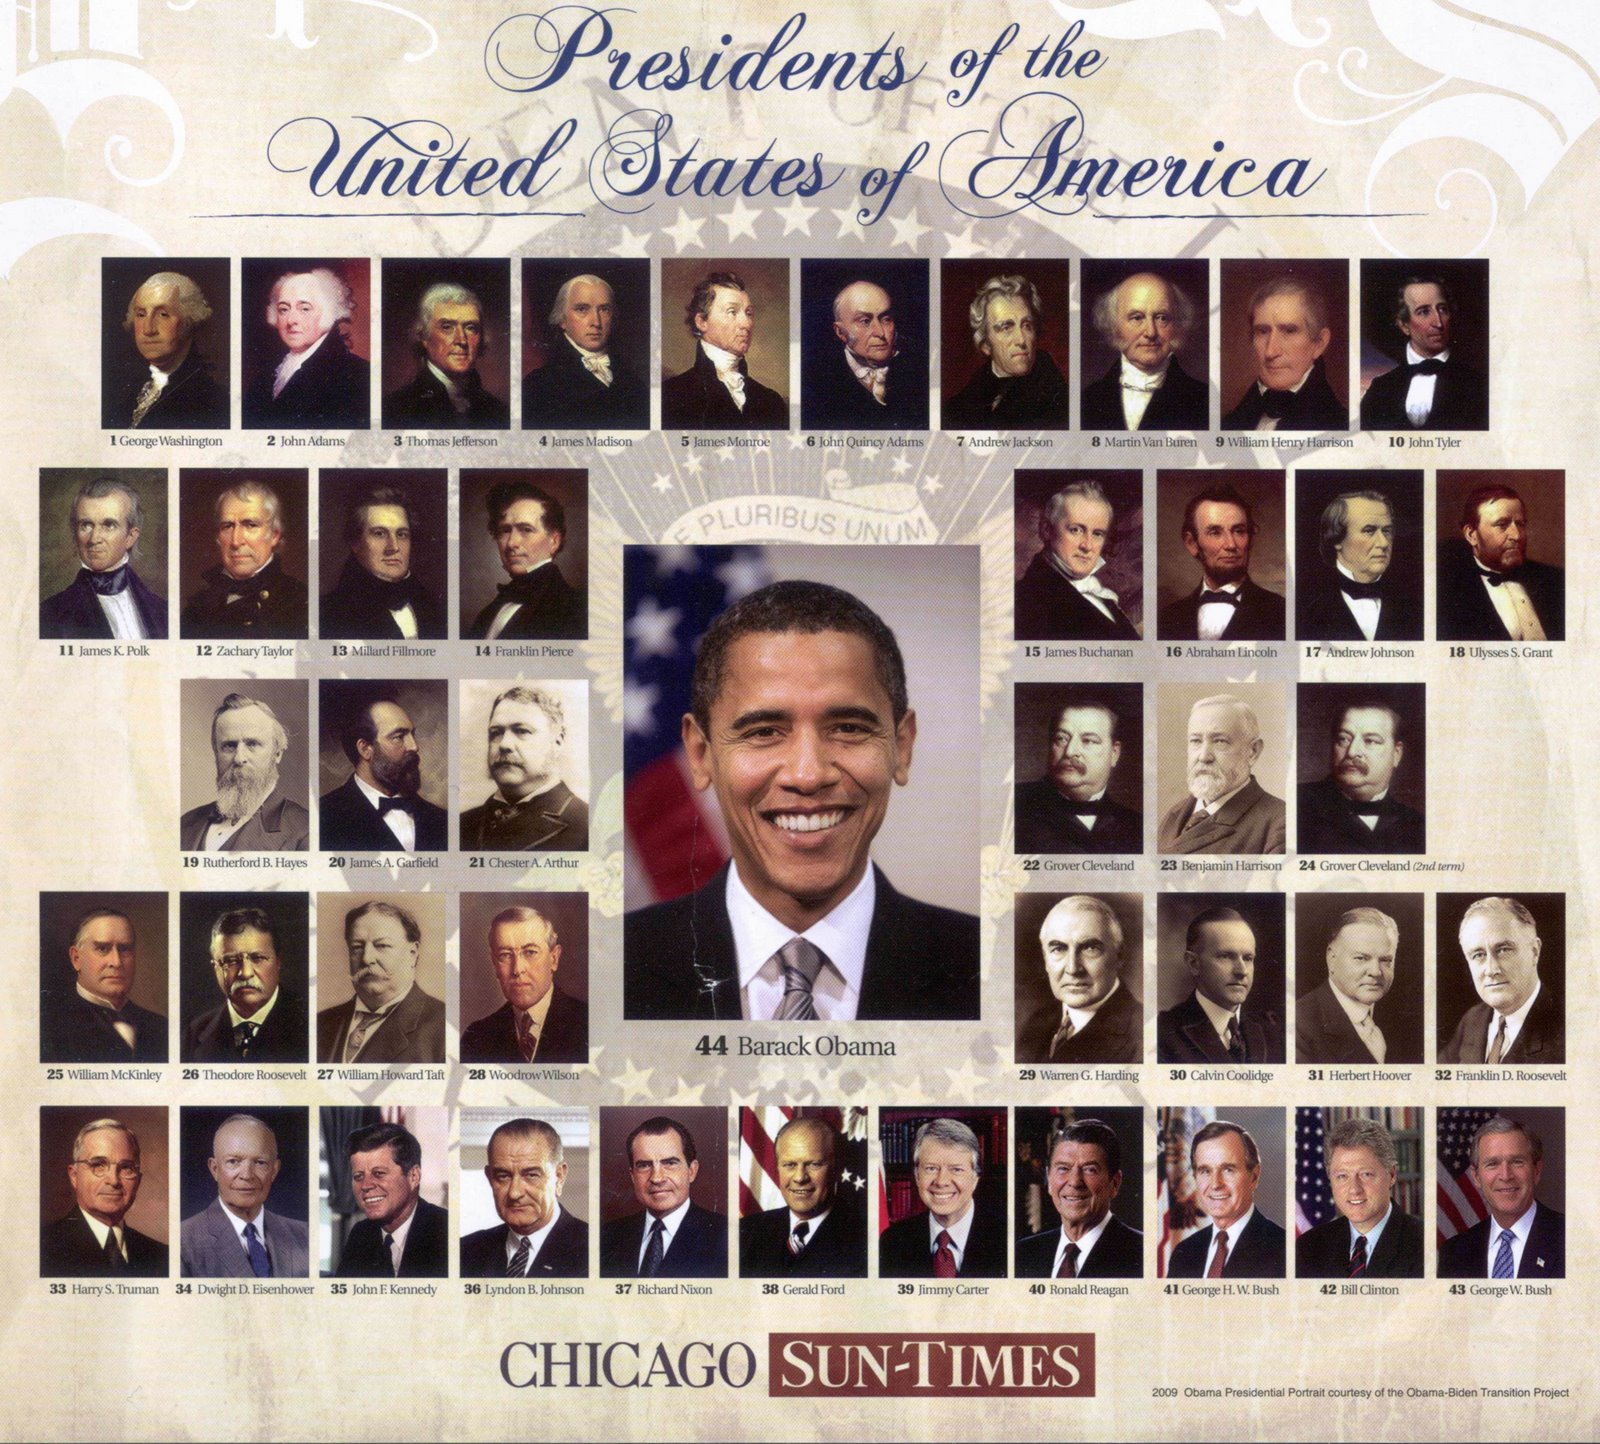 presidents-of-the-united-states-of-america-with-44th-barack-obama-still-in-position